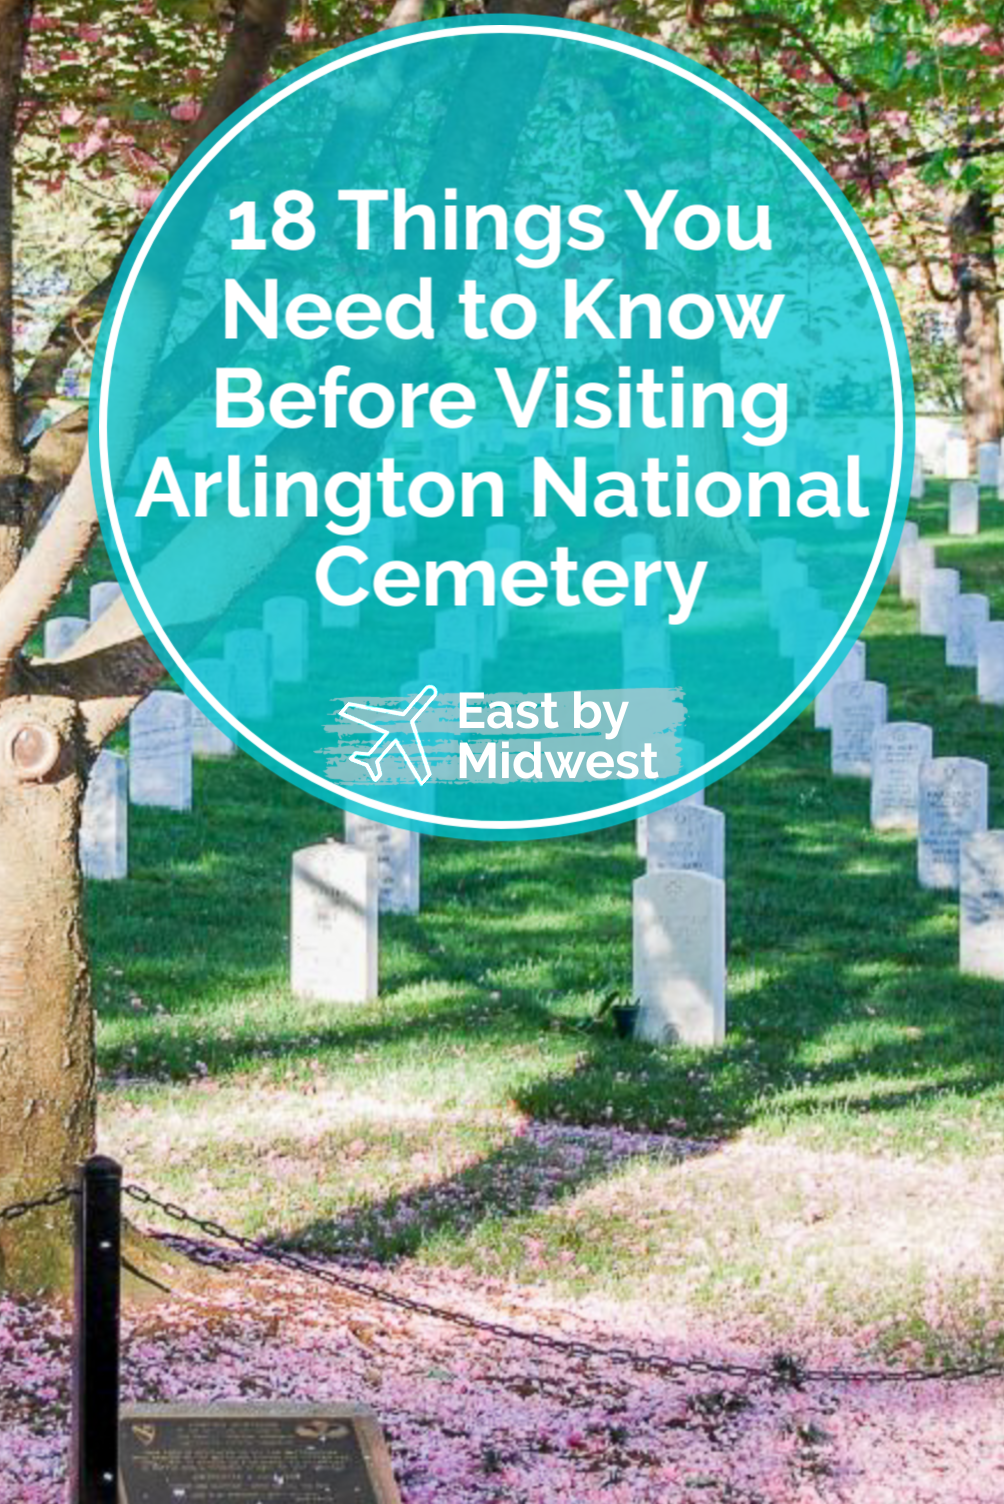 Arlington National Cemetery is a tribute to those who served and sacrificed for the United States. These tips will help you prepare for your visit. #arlington #arlingtoncemetery #arlingtonnationalcemetery #washingtondc #travel #bucketlist #wanderlust #usa #america #virginia